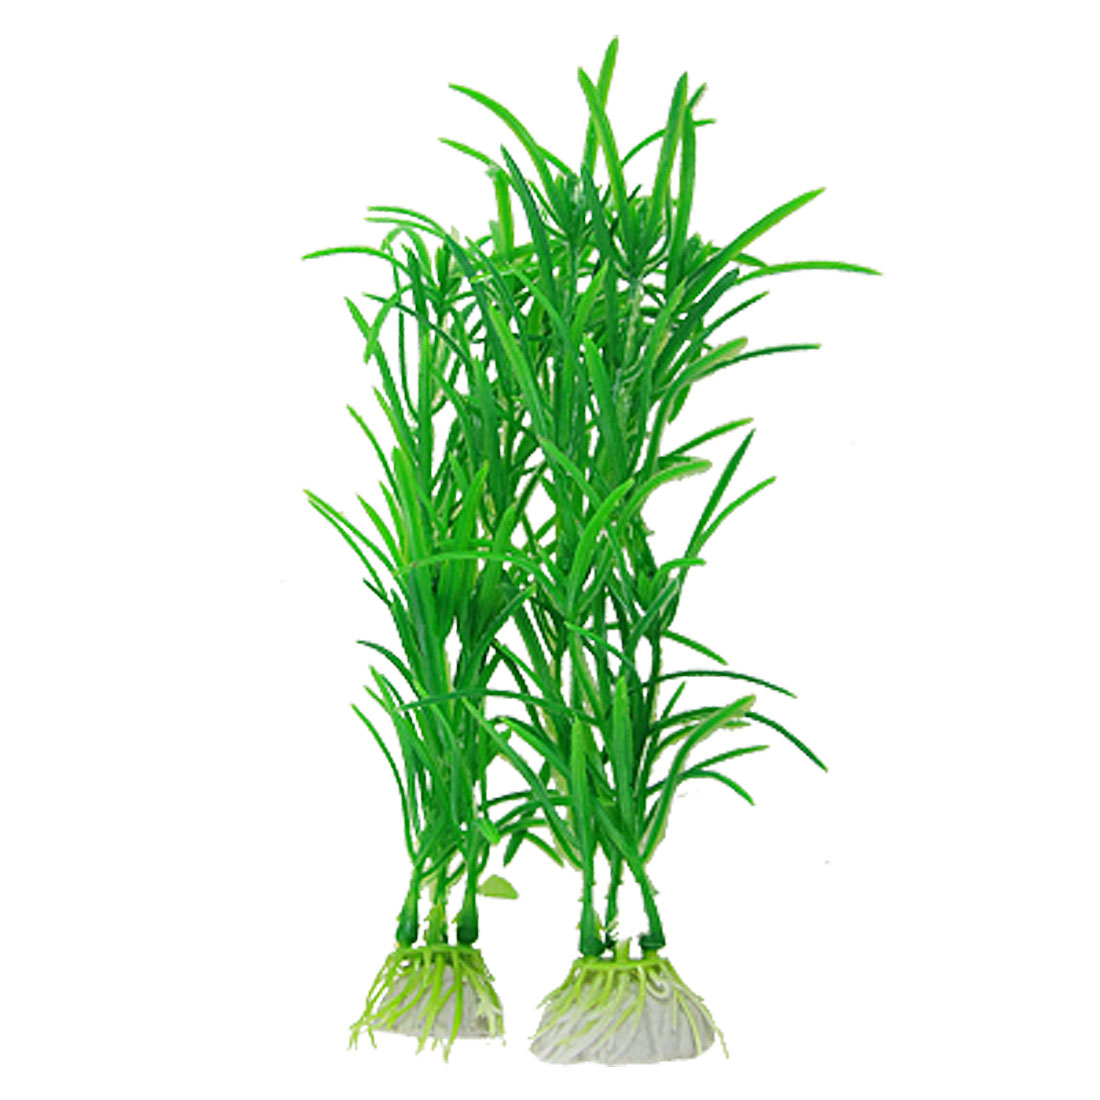 "Aquarium Fish Tank Ornament Artificial Green Aquatic Plastic Plants 7"" 10 Pcs"